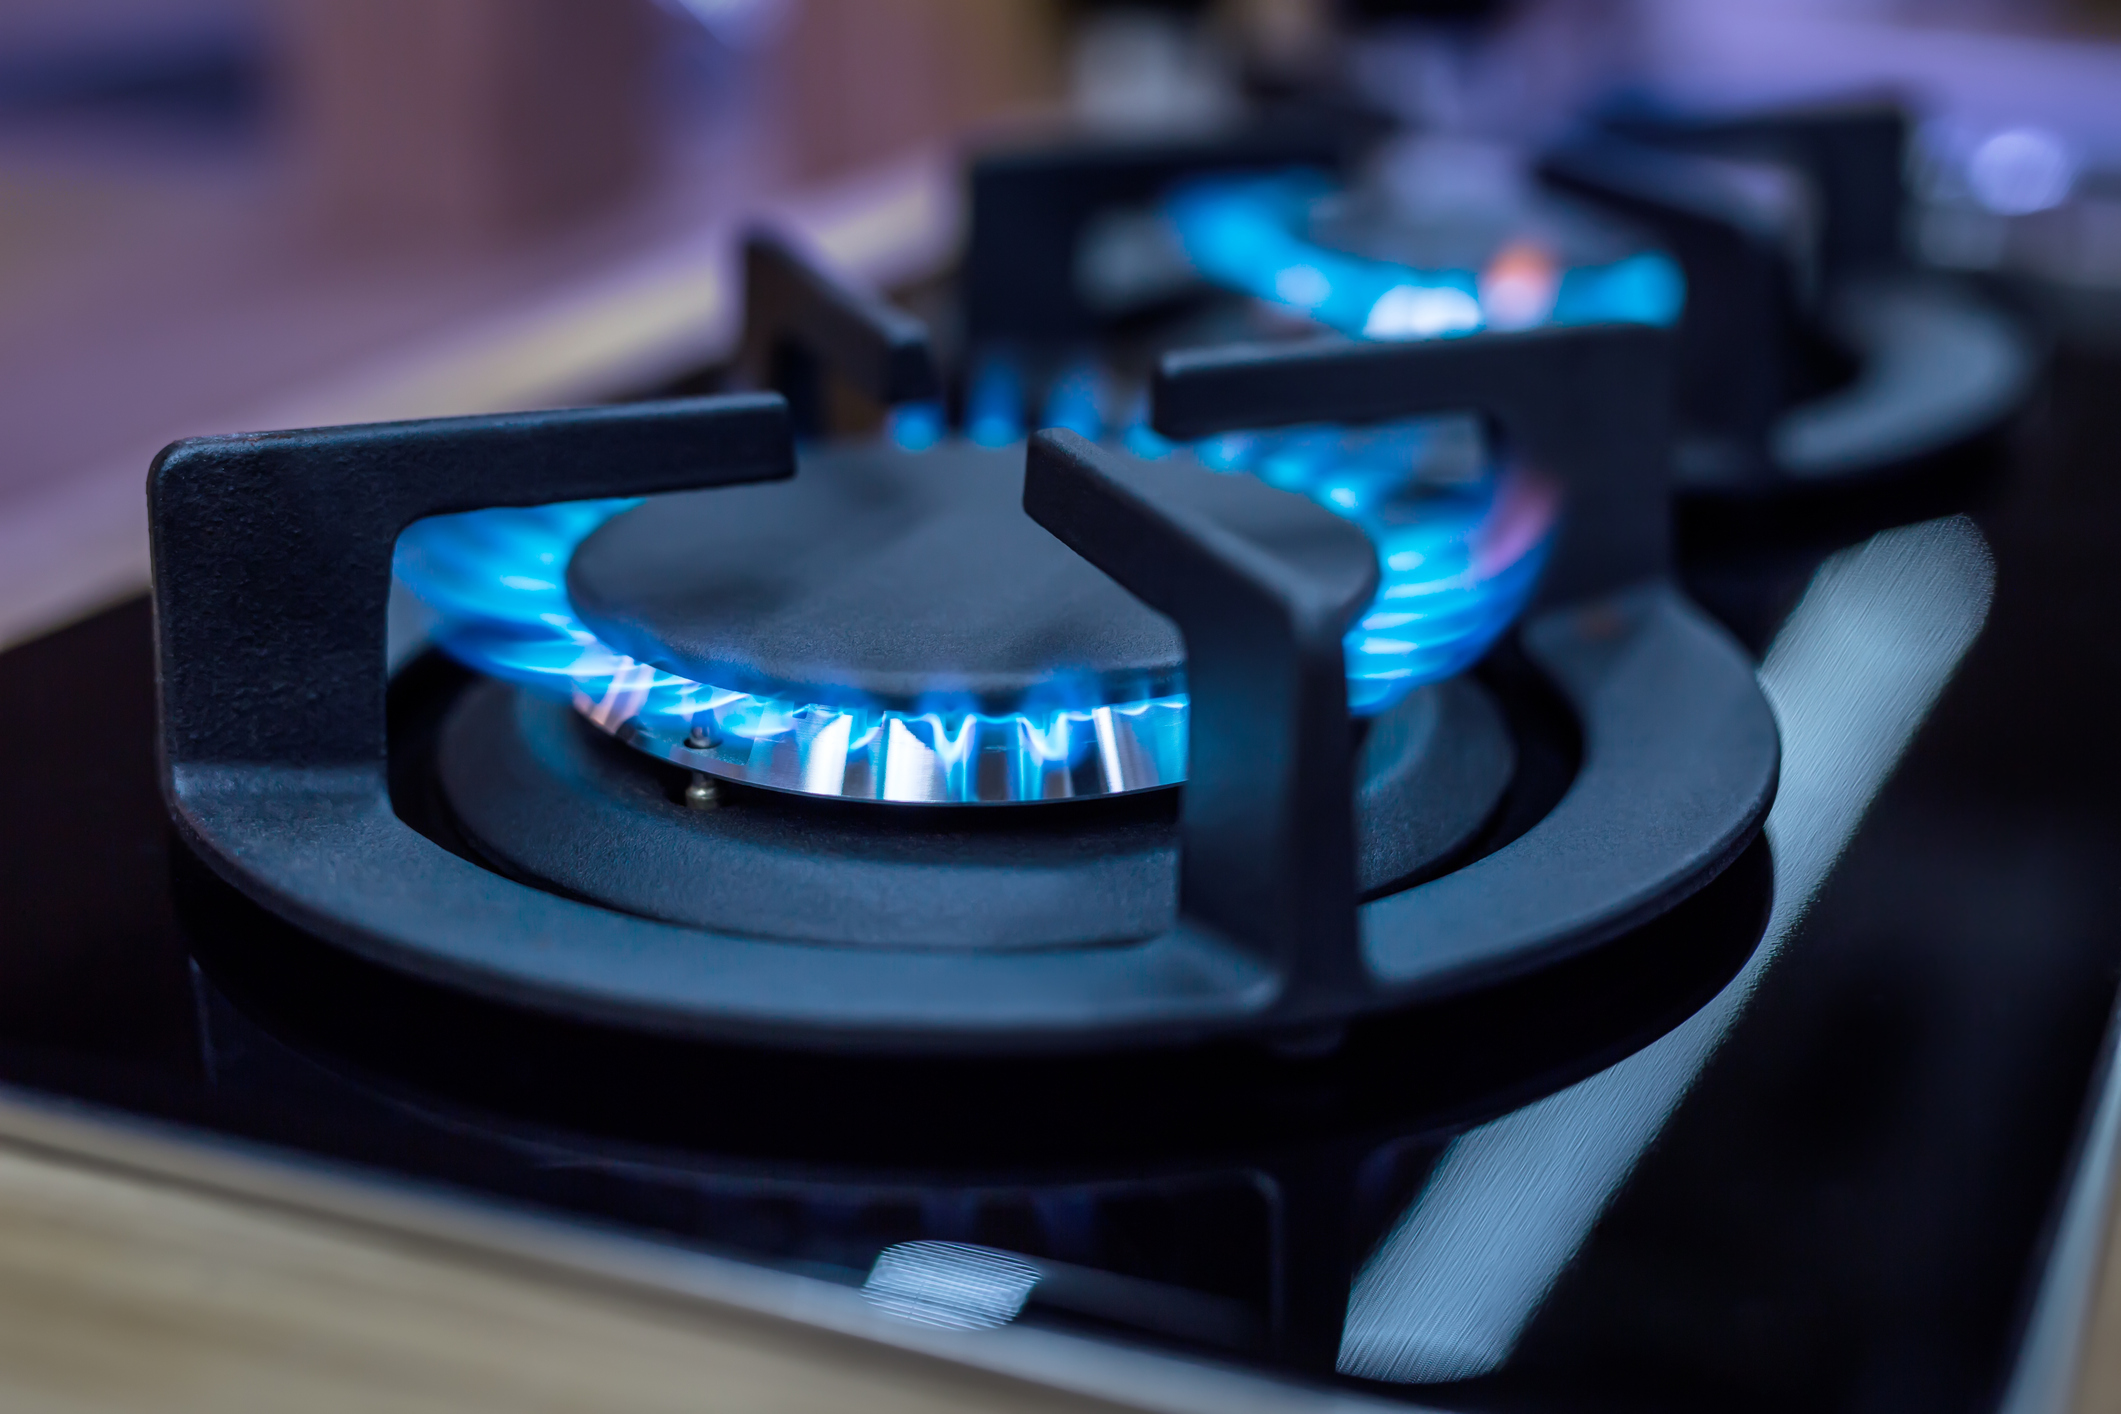 Gas cooktop with blue flame